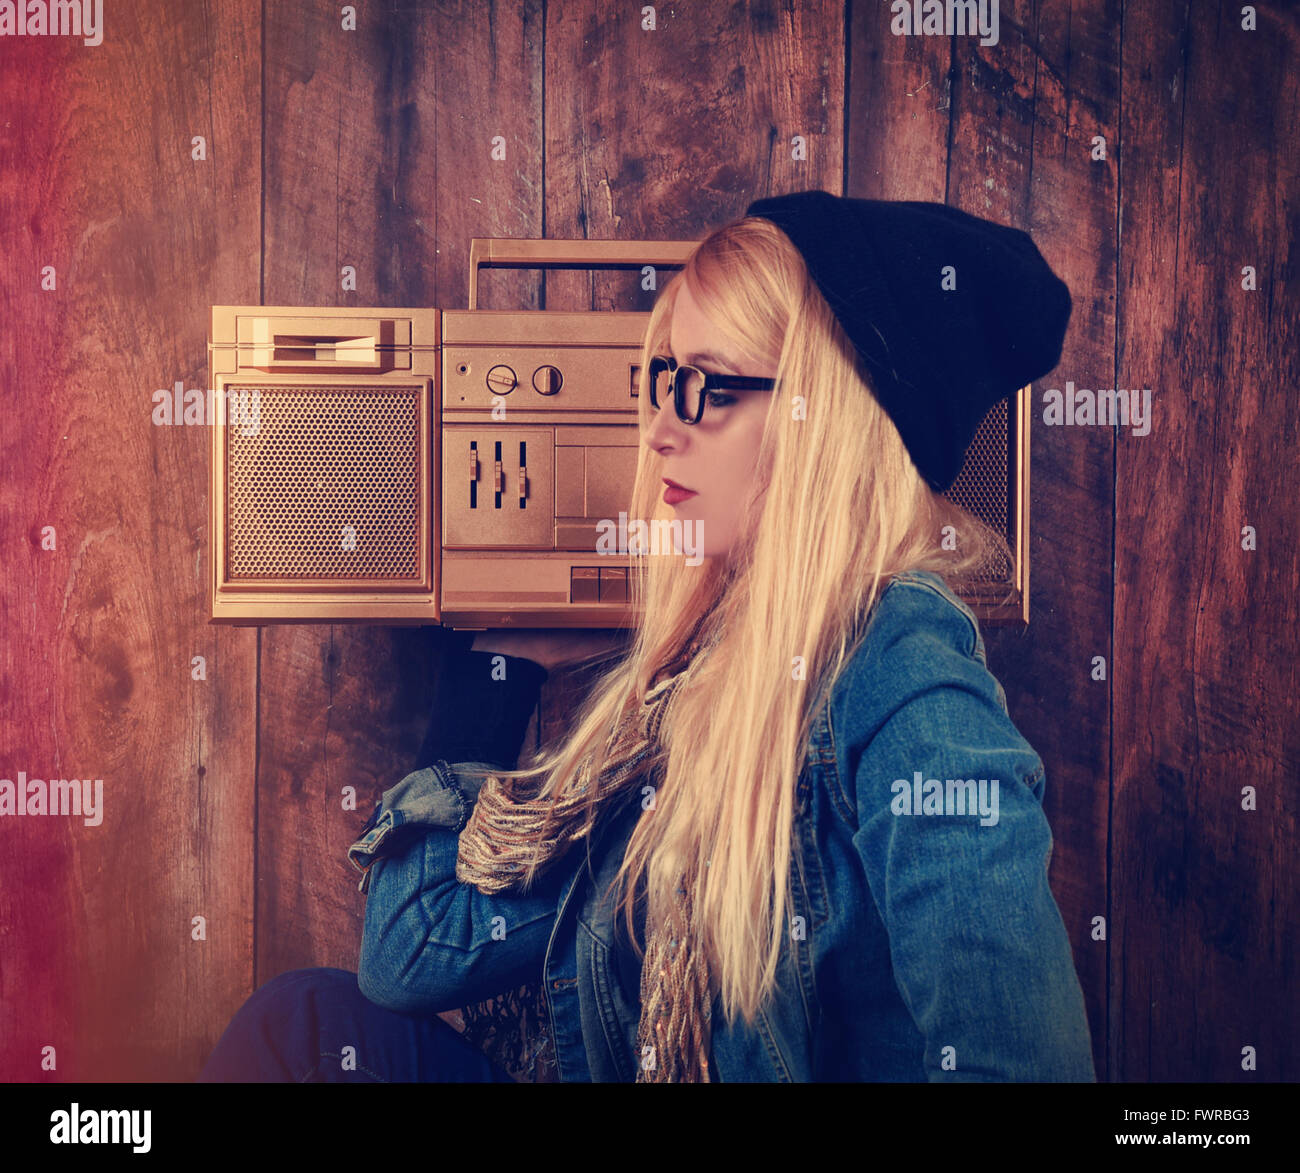 A hipster girl with glasses is listening to a vintage gold boombox radio with a speaker for a music entertainment - Stock Image